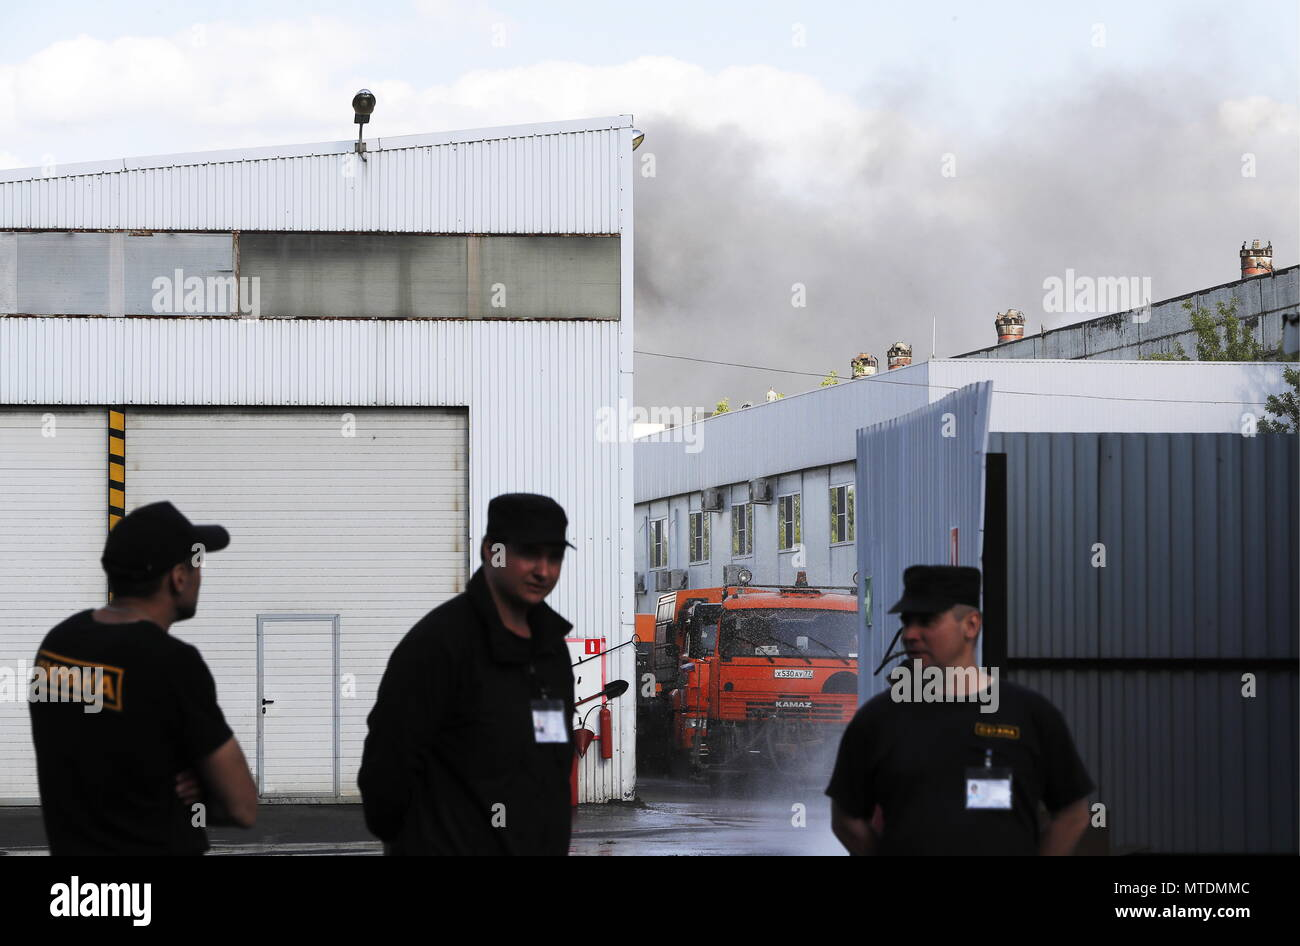 MOSCOW, RUSSIA   MAY 30, 2018: Security Staff On Guard During A Fire